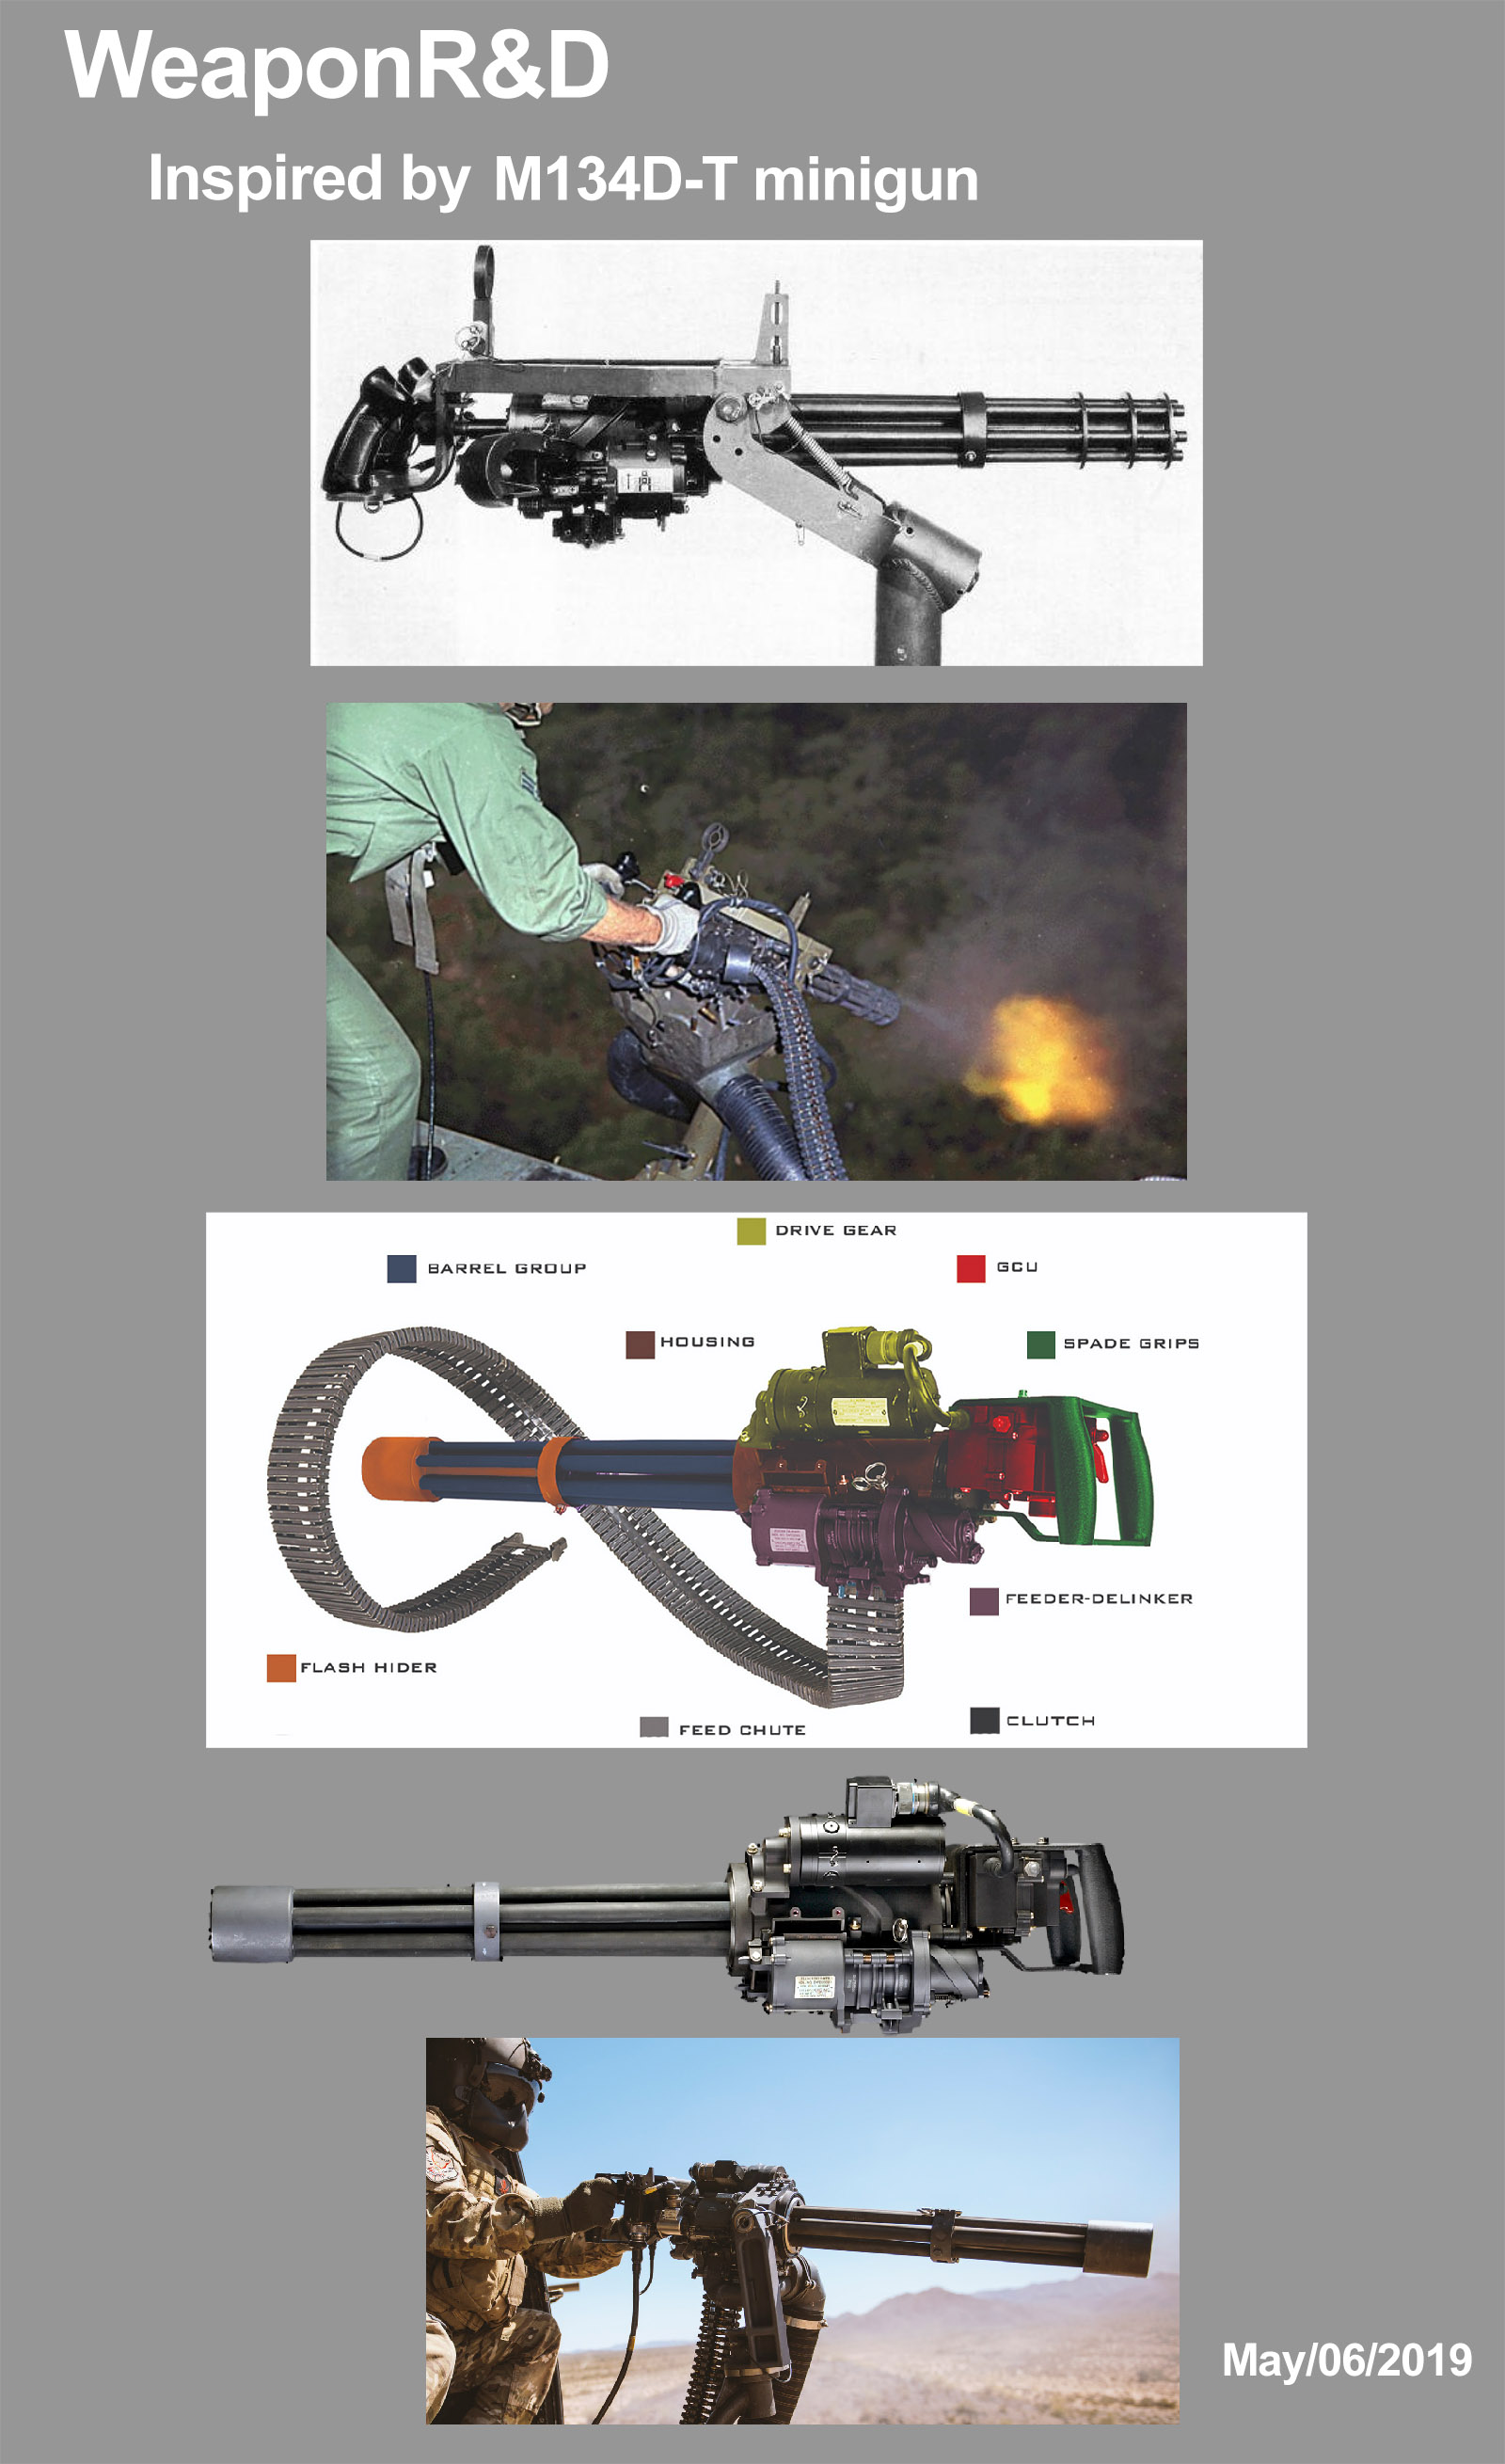 Three D Guns 2 : Paintball Handmade machine Gun -Toy